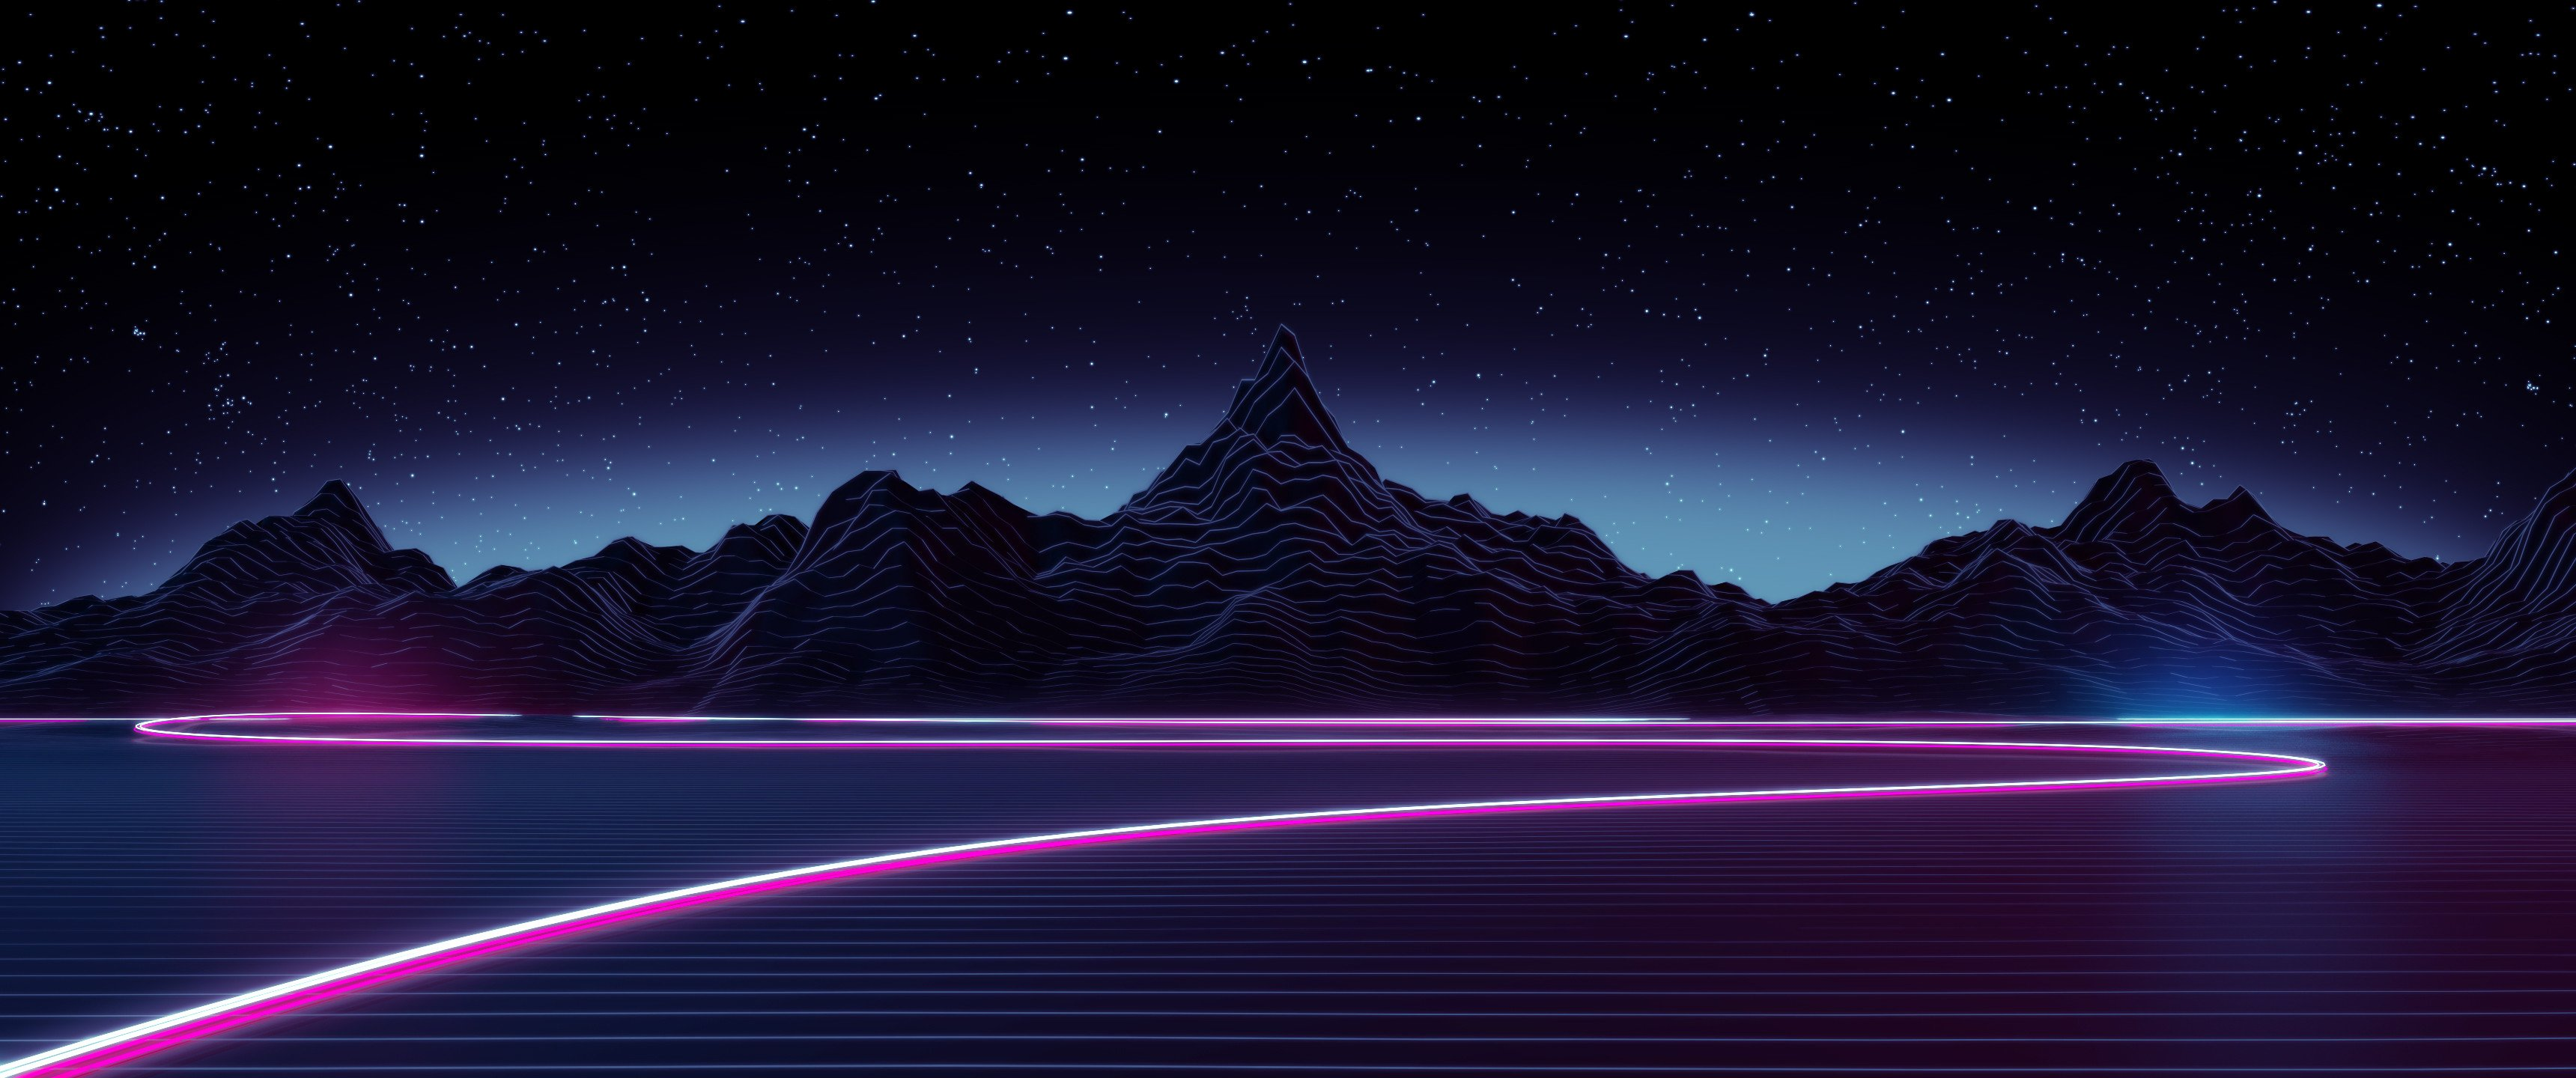 Retro 80s Wallpaper 66 images 3440x1440